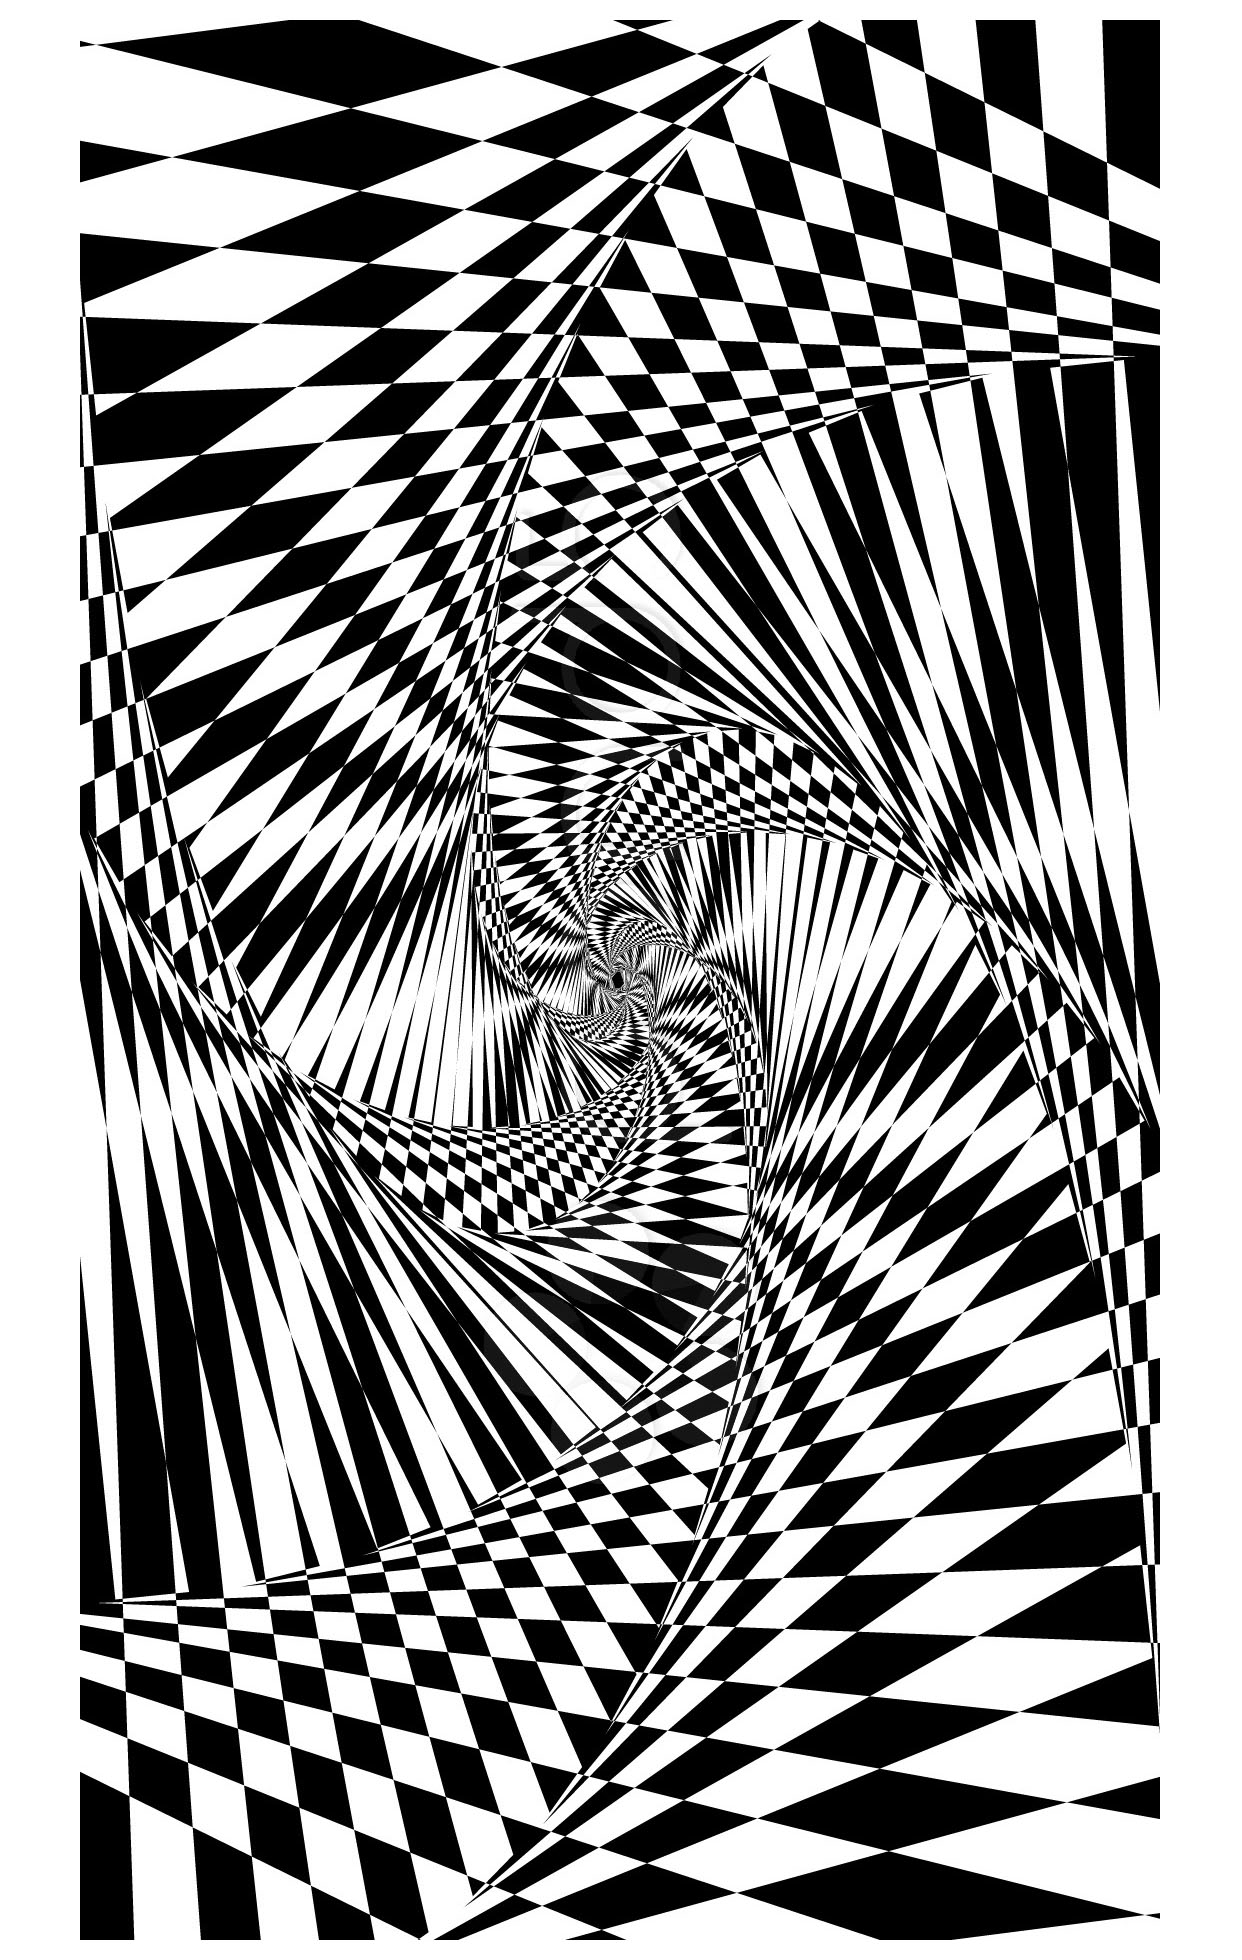 coloring pages for adults trippy get this trippy coloring pages for adults hz76o adults pages coloring trippy for